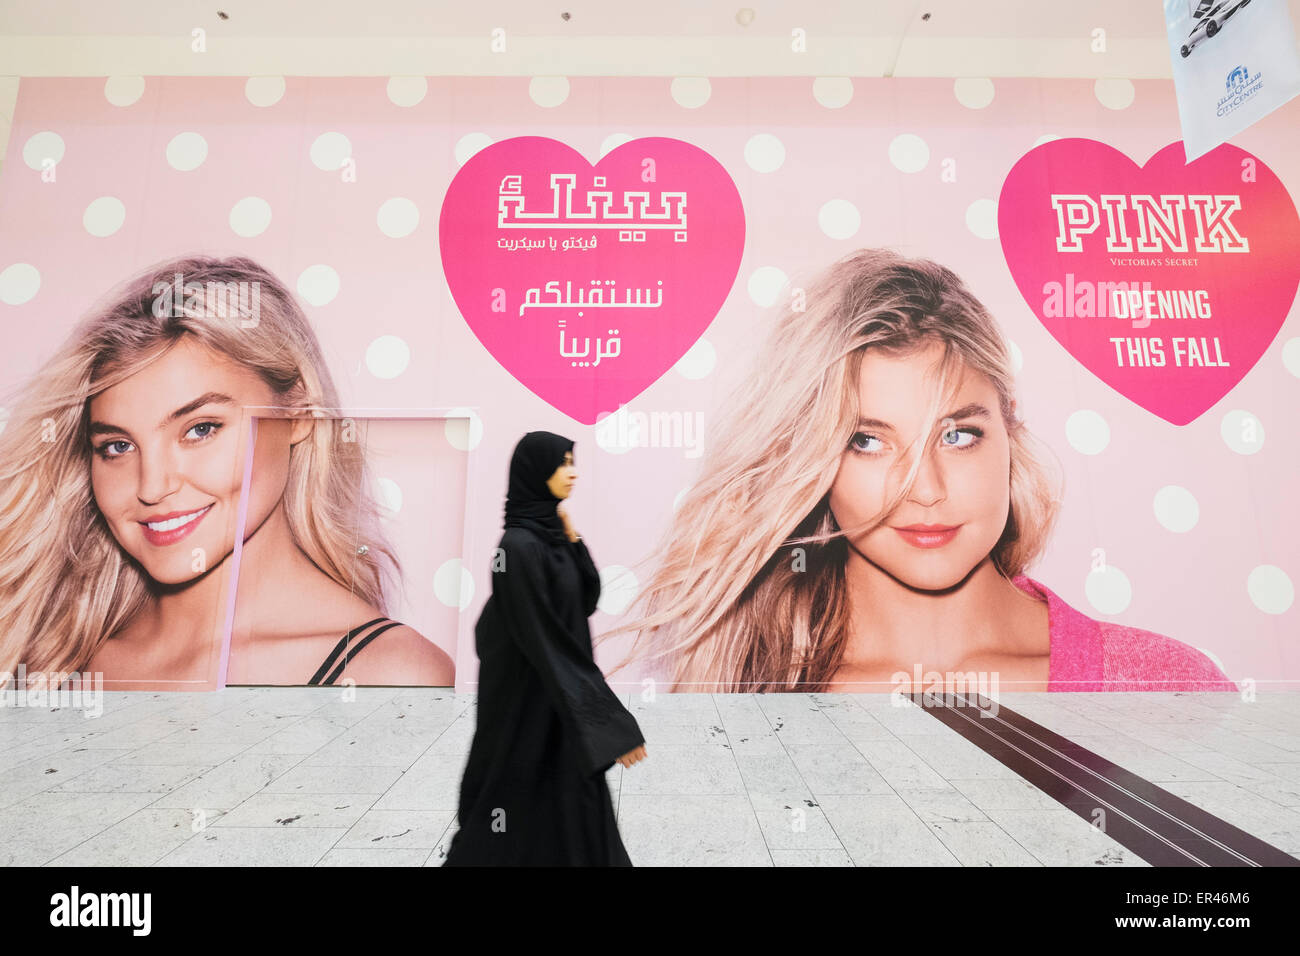 Woman walking past billboard for new Victoria's Secret shop in  City Centre shopping mall in Manama Kingdom - Stock Image